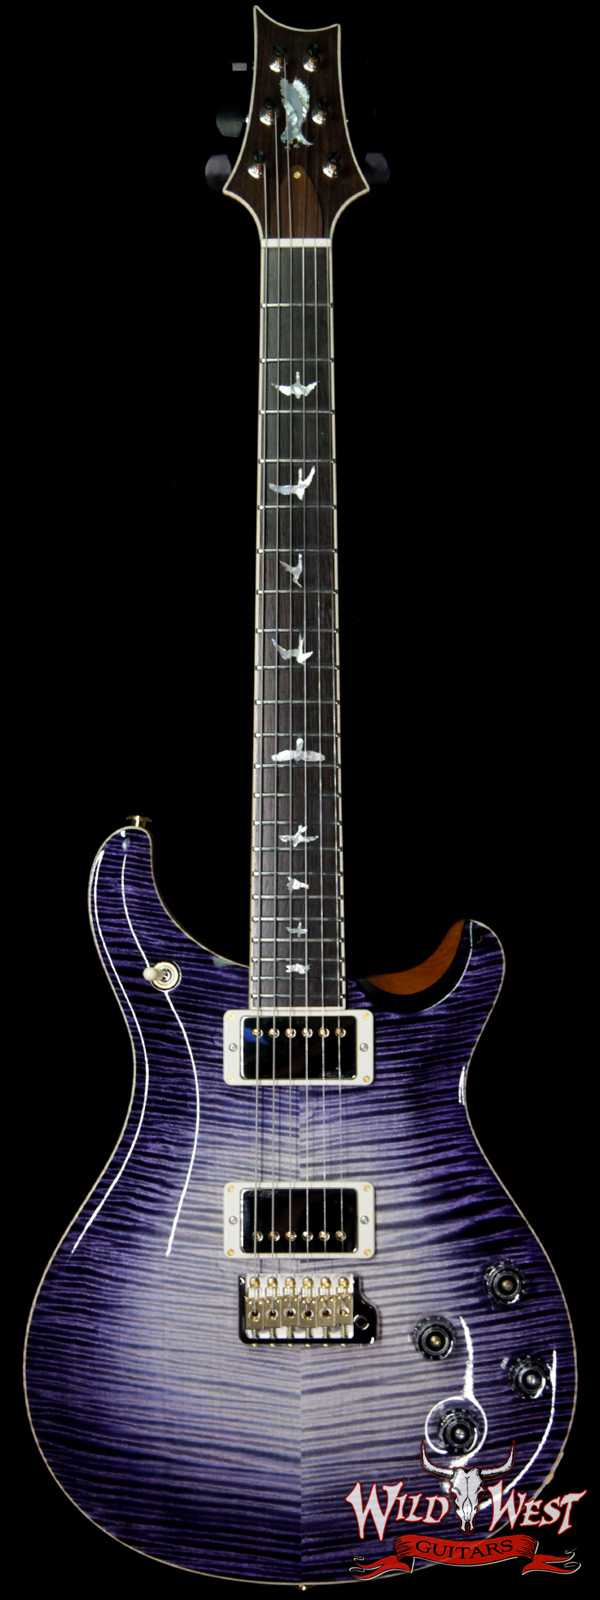 PRS Private Stock # 7826 McCarty 594 Trem Flame Top Brazilian Rosewood Board Purple Mist Glow